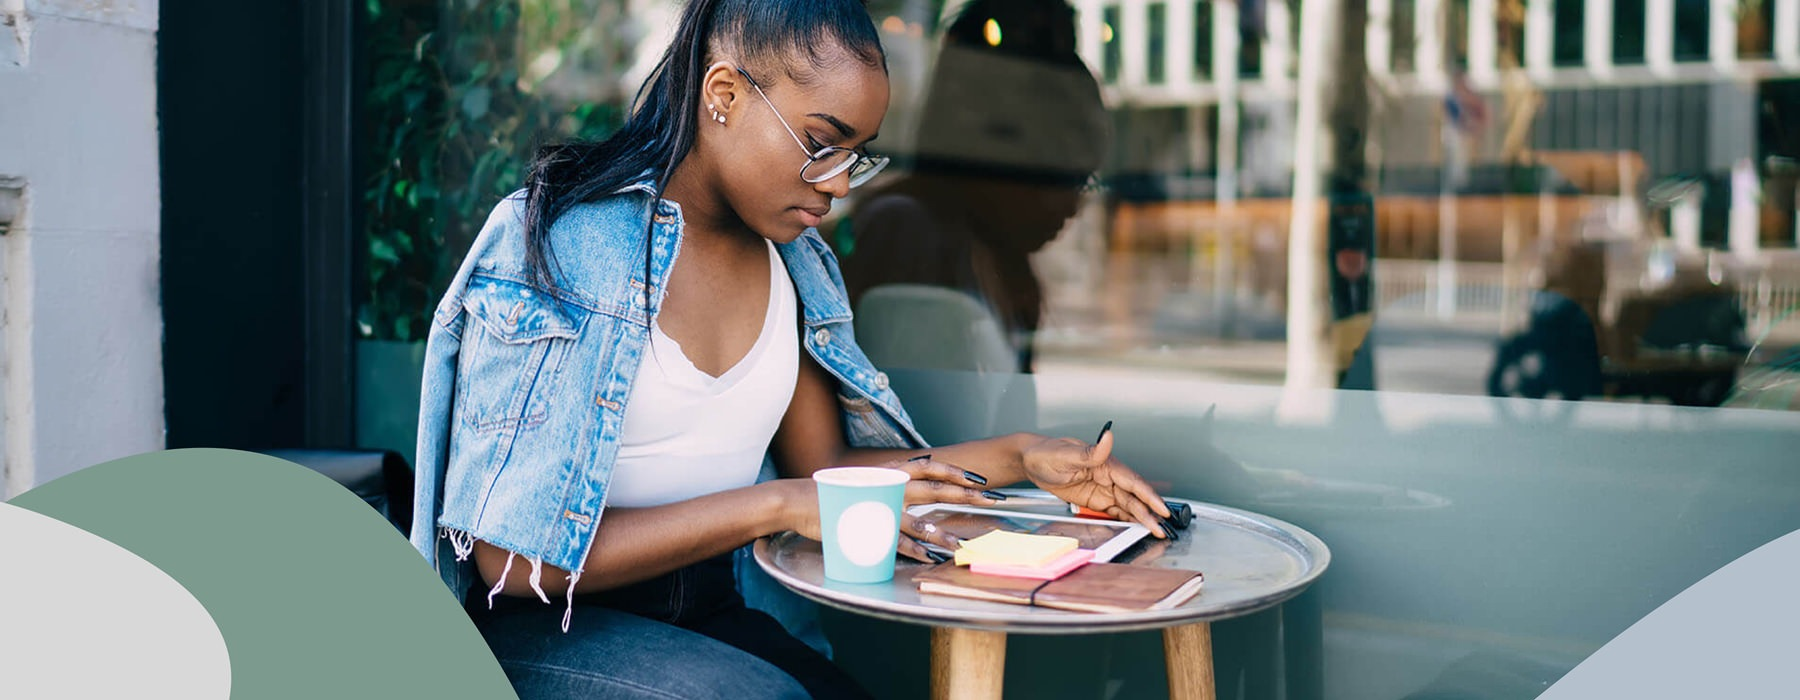 young woman works at a table outside a cafe